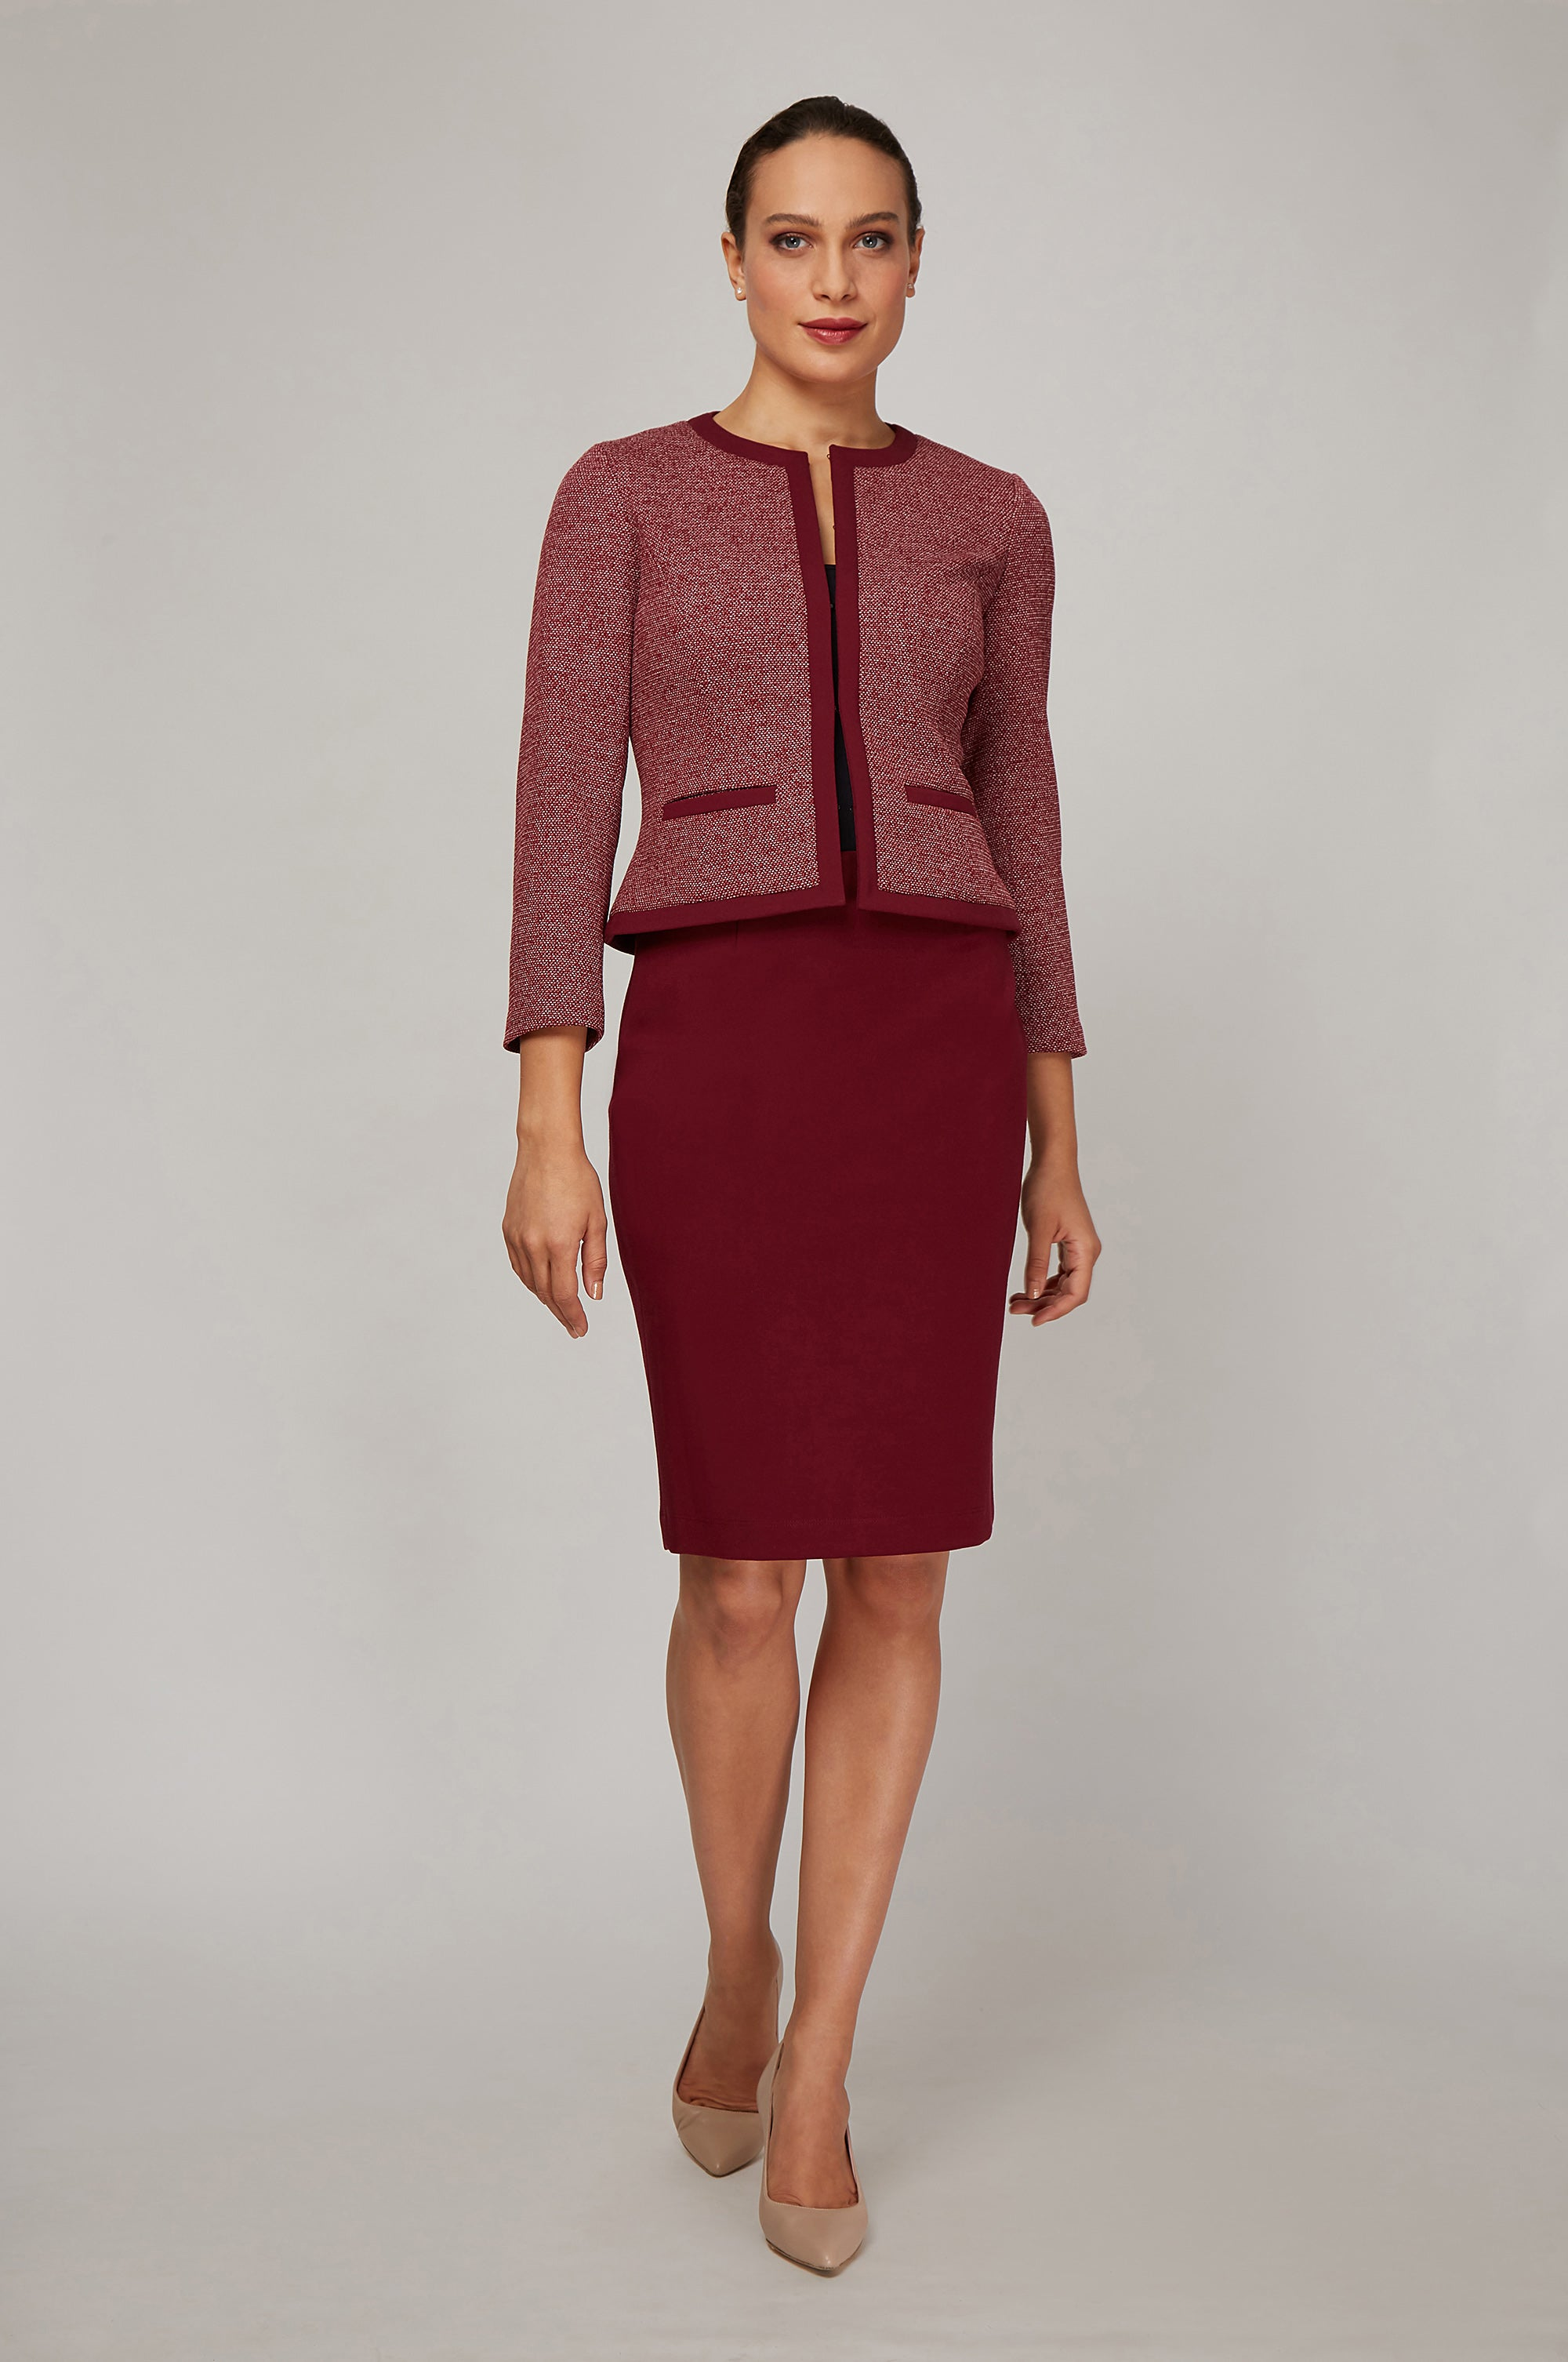 Women's Michelle Jacket in Burgundy Knit | Nora Gardner Front